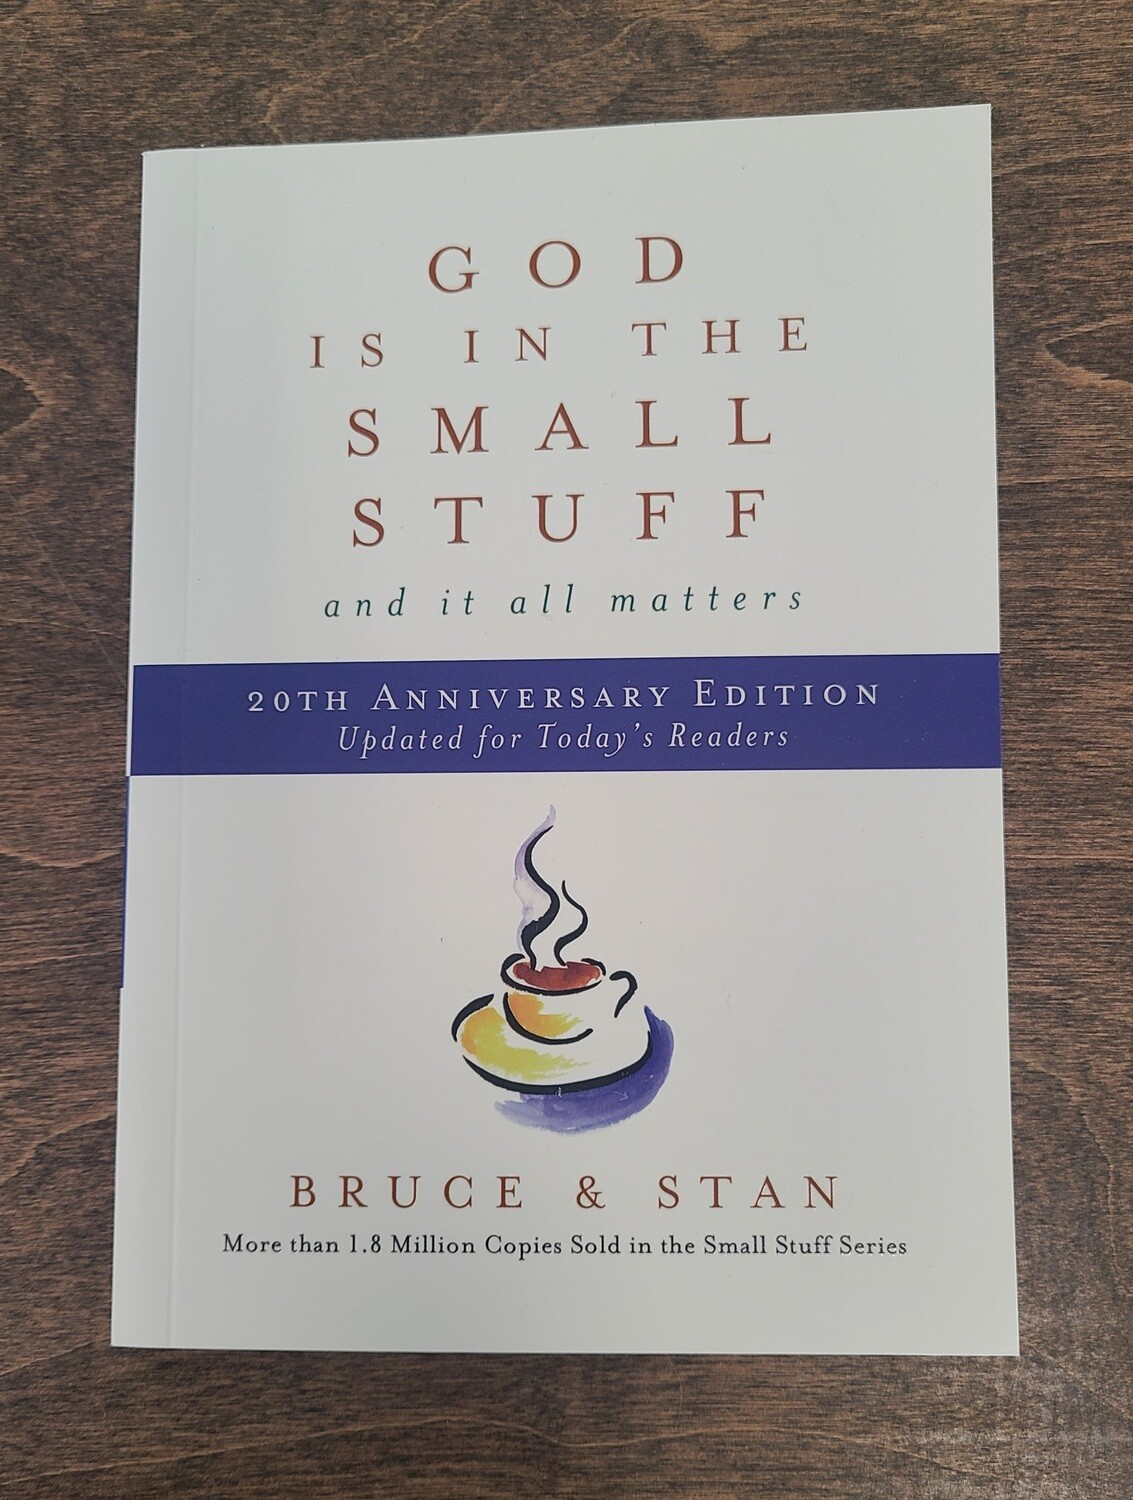 God is in the Small Stuff 20th Anniversary Paperback Edition by Bruce and Stan